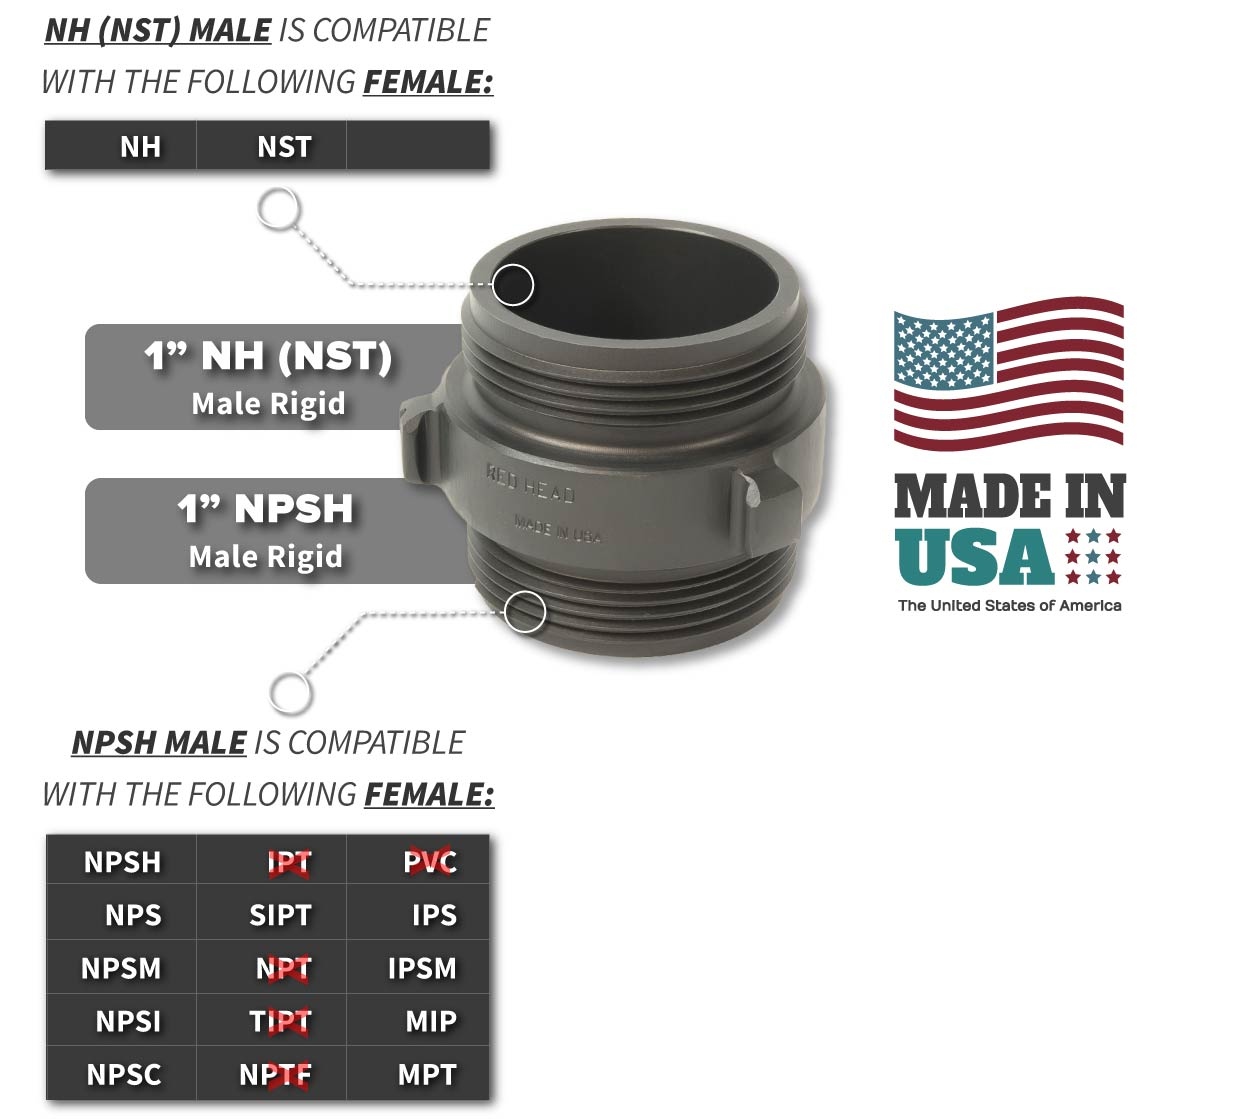 1 Inch NH-NST Male x 1 Inch NPSH Male Compatibility Thread Chart